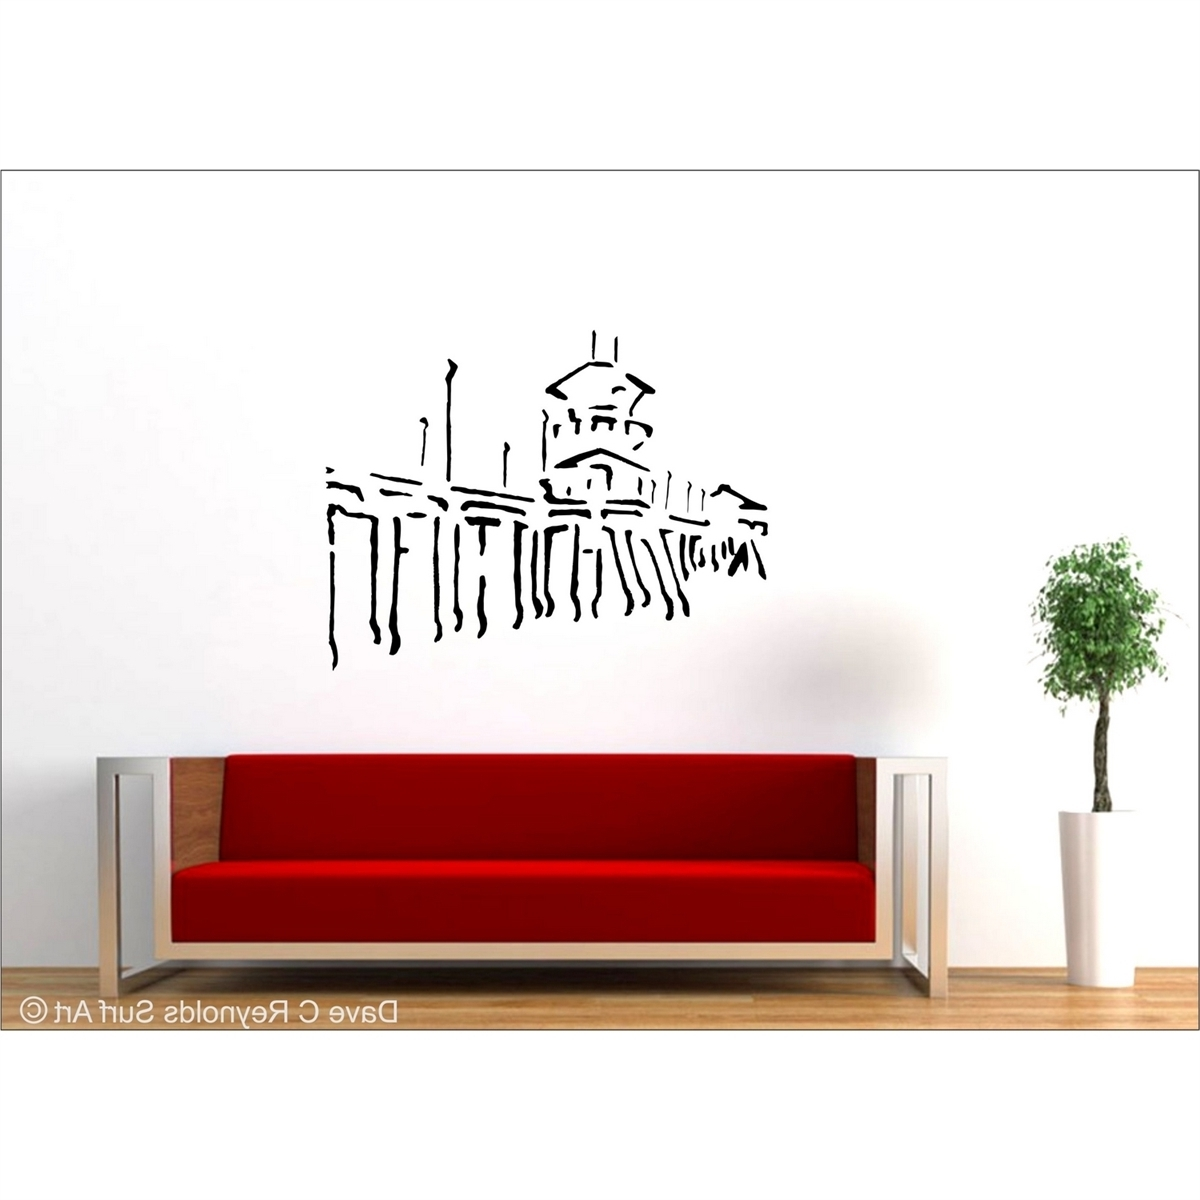 Wall Sticker Art Intended For Most Current Huntington Beach Pier Vinyl Wall Decal Art (View 11 of 15)